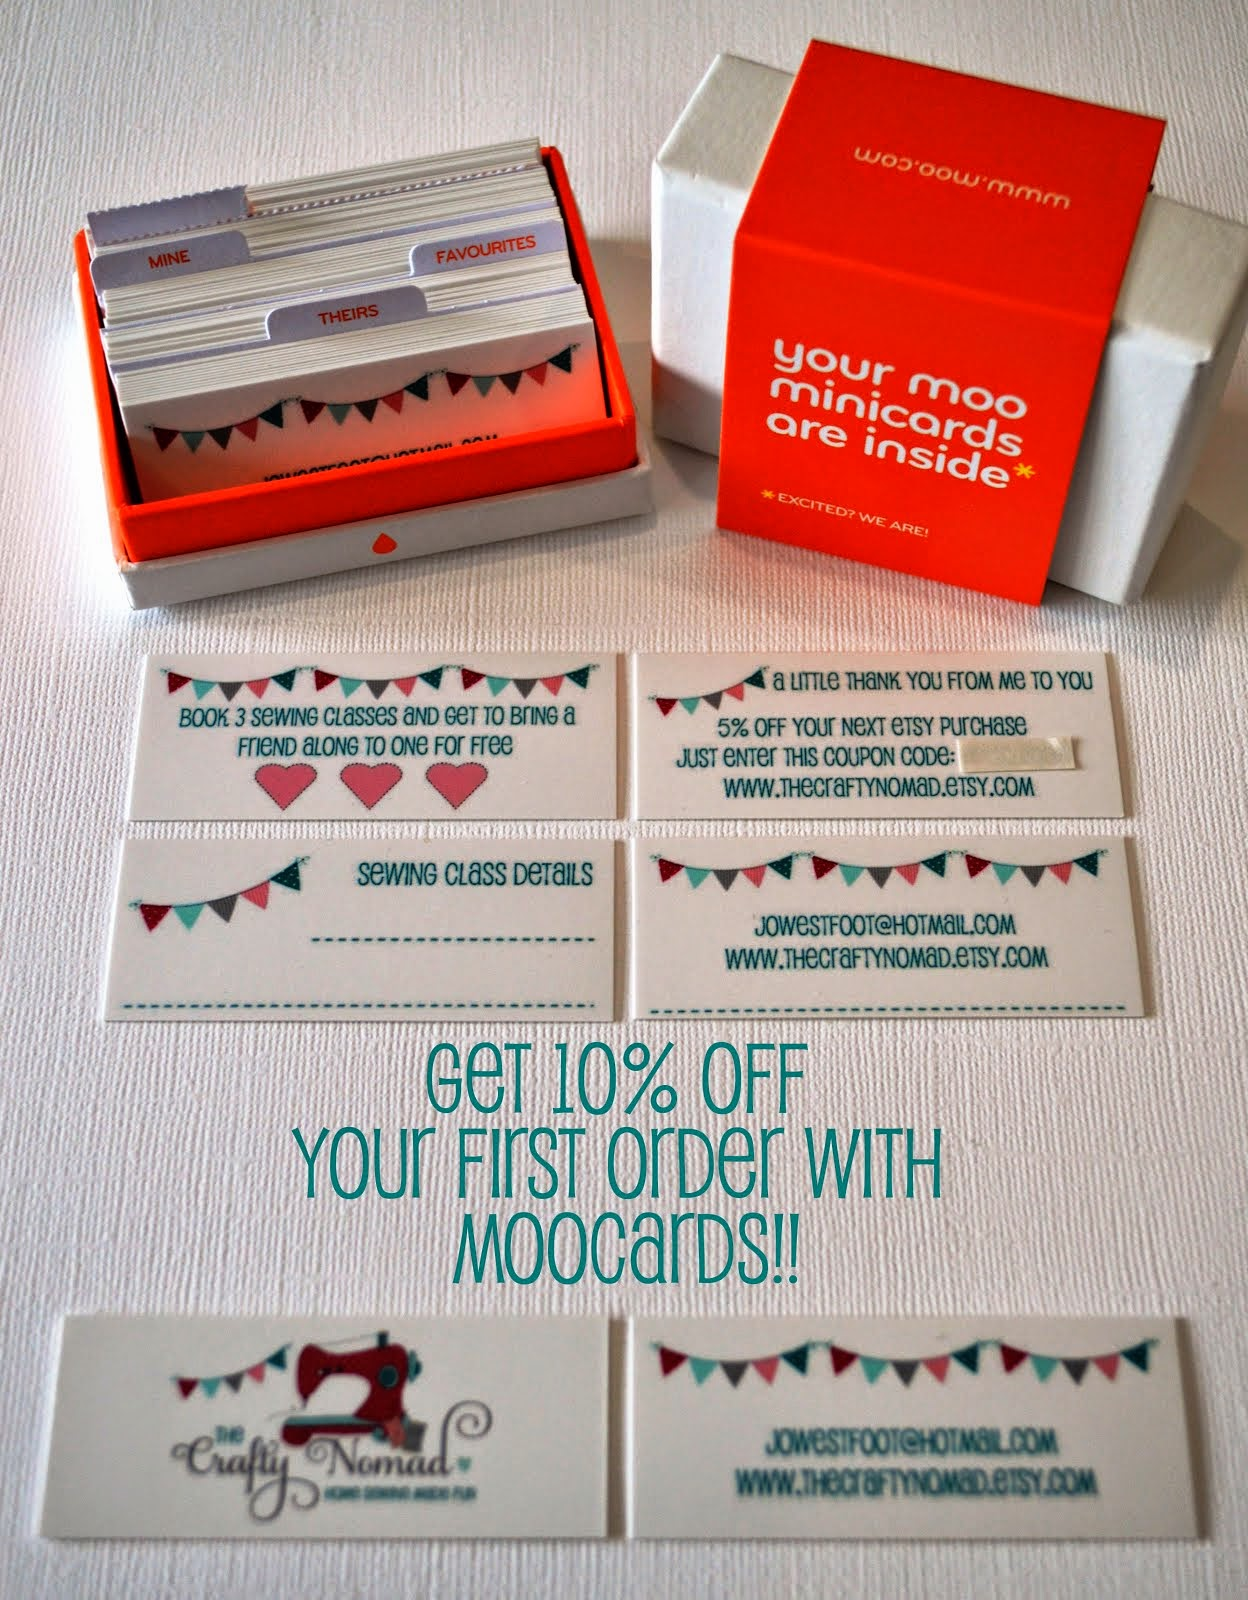 Moo Cards 10% Discount Code (UK)